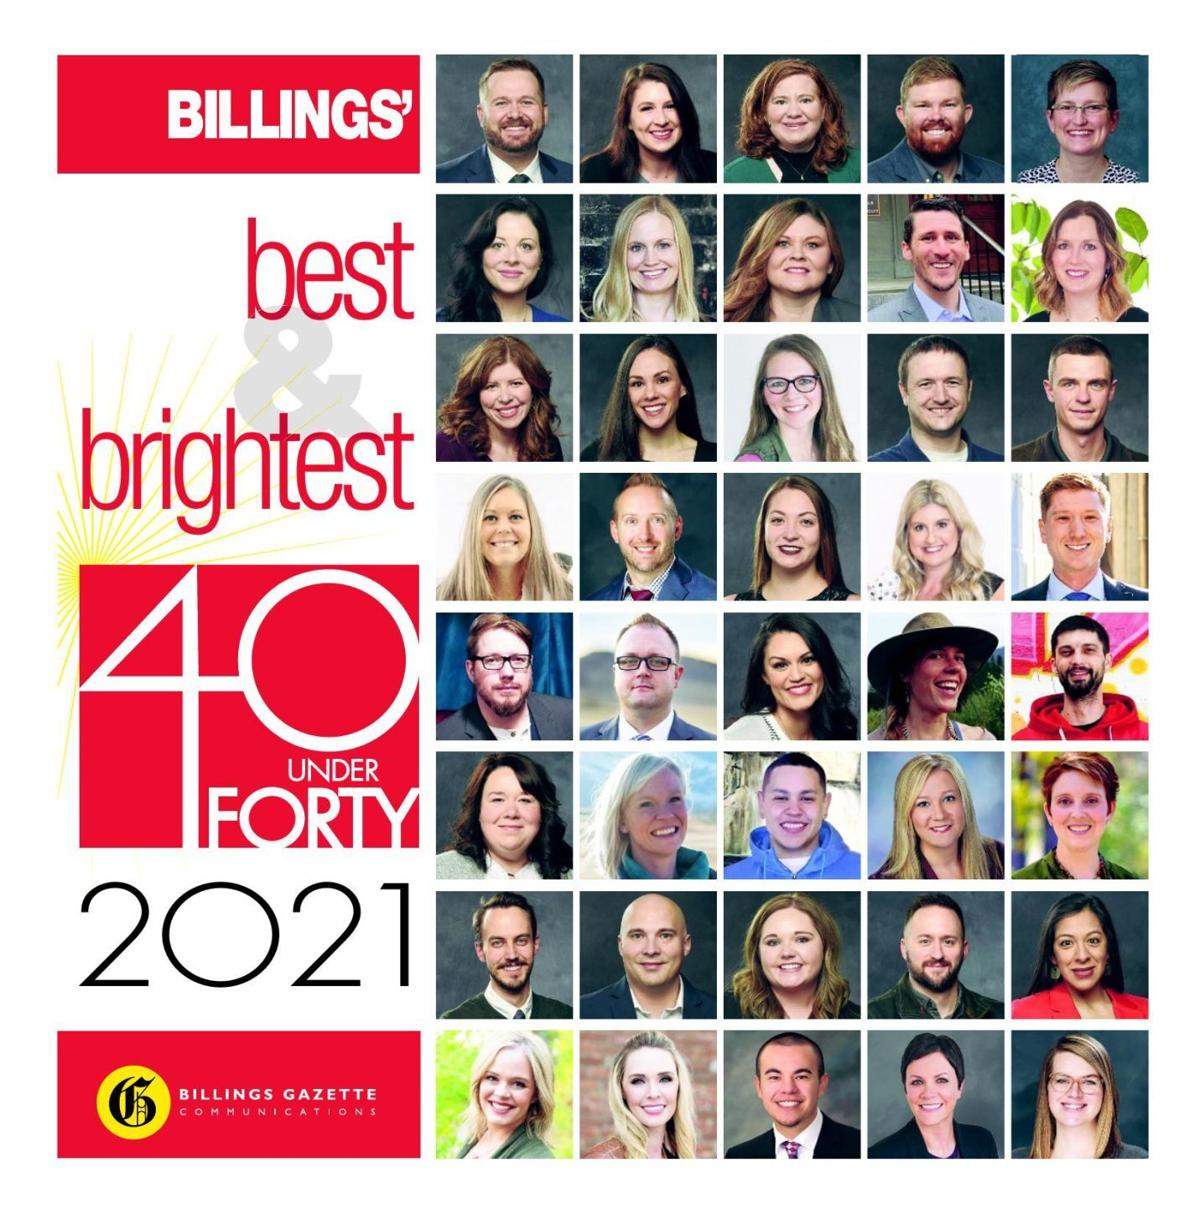 40 Under Forty 2021 — Billings' Best & Brightest